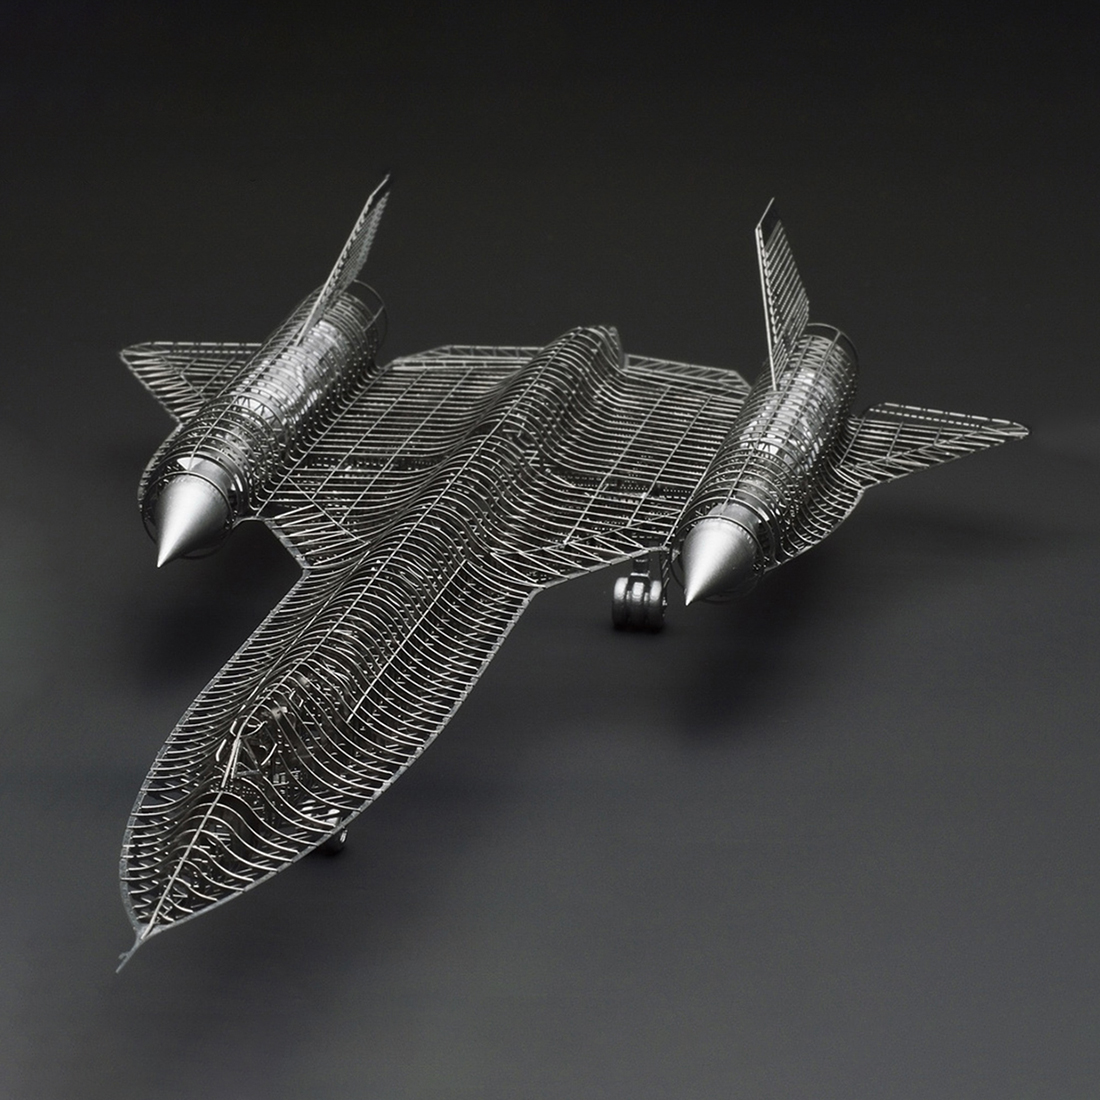 1/144 SR-71 Aircraft Model Kit Scout Aircraft Decoration 3D Metal Assembly Model For Kids Birthdaty Gifts 2020